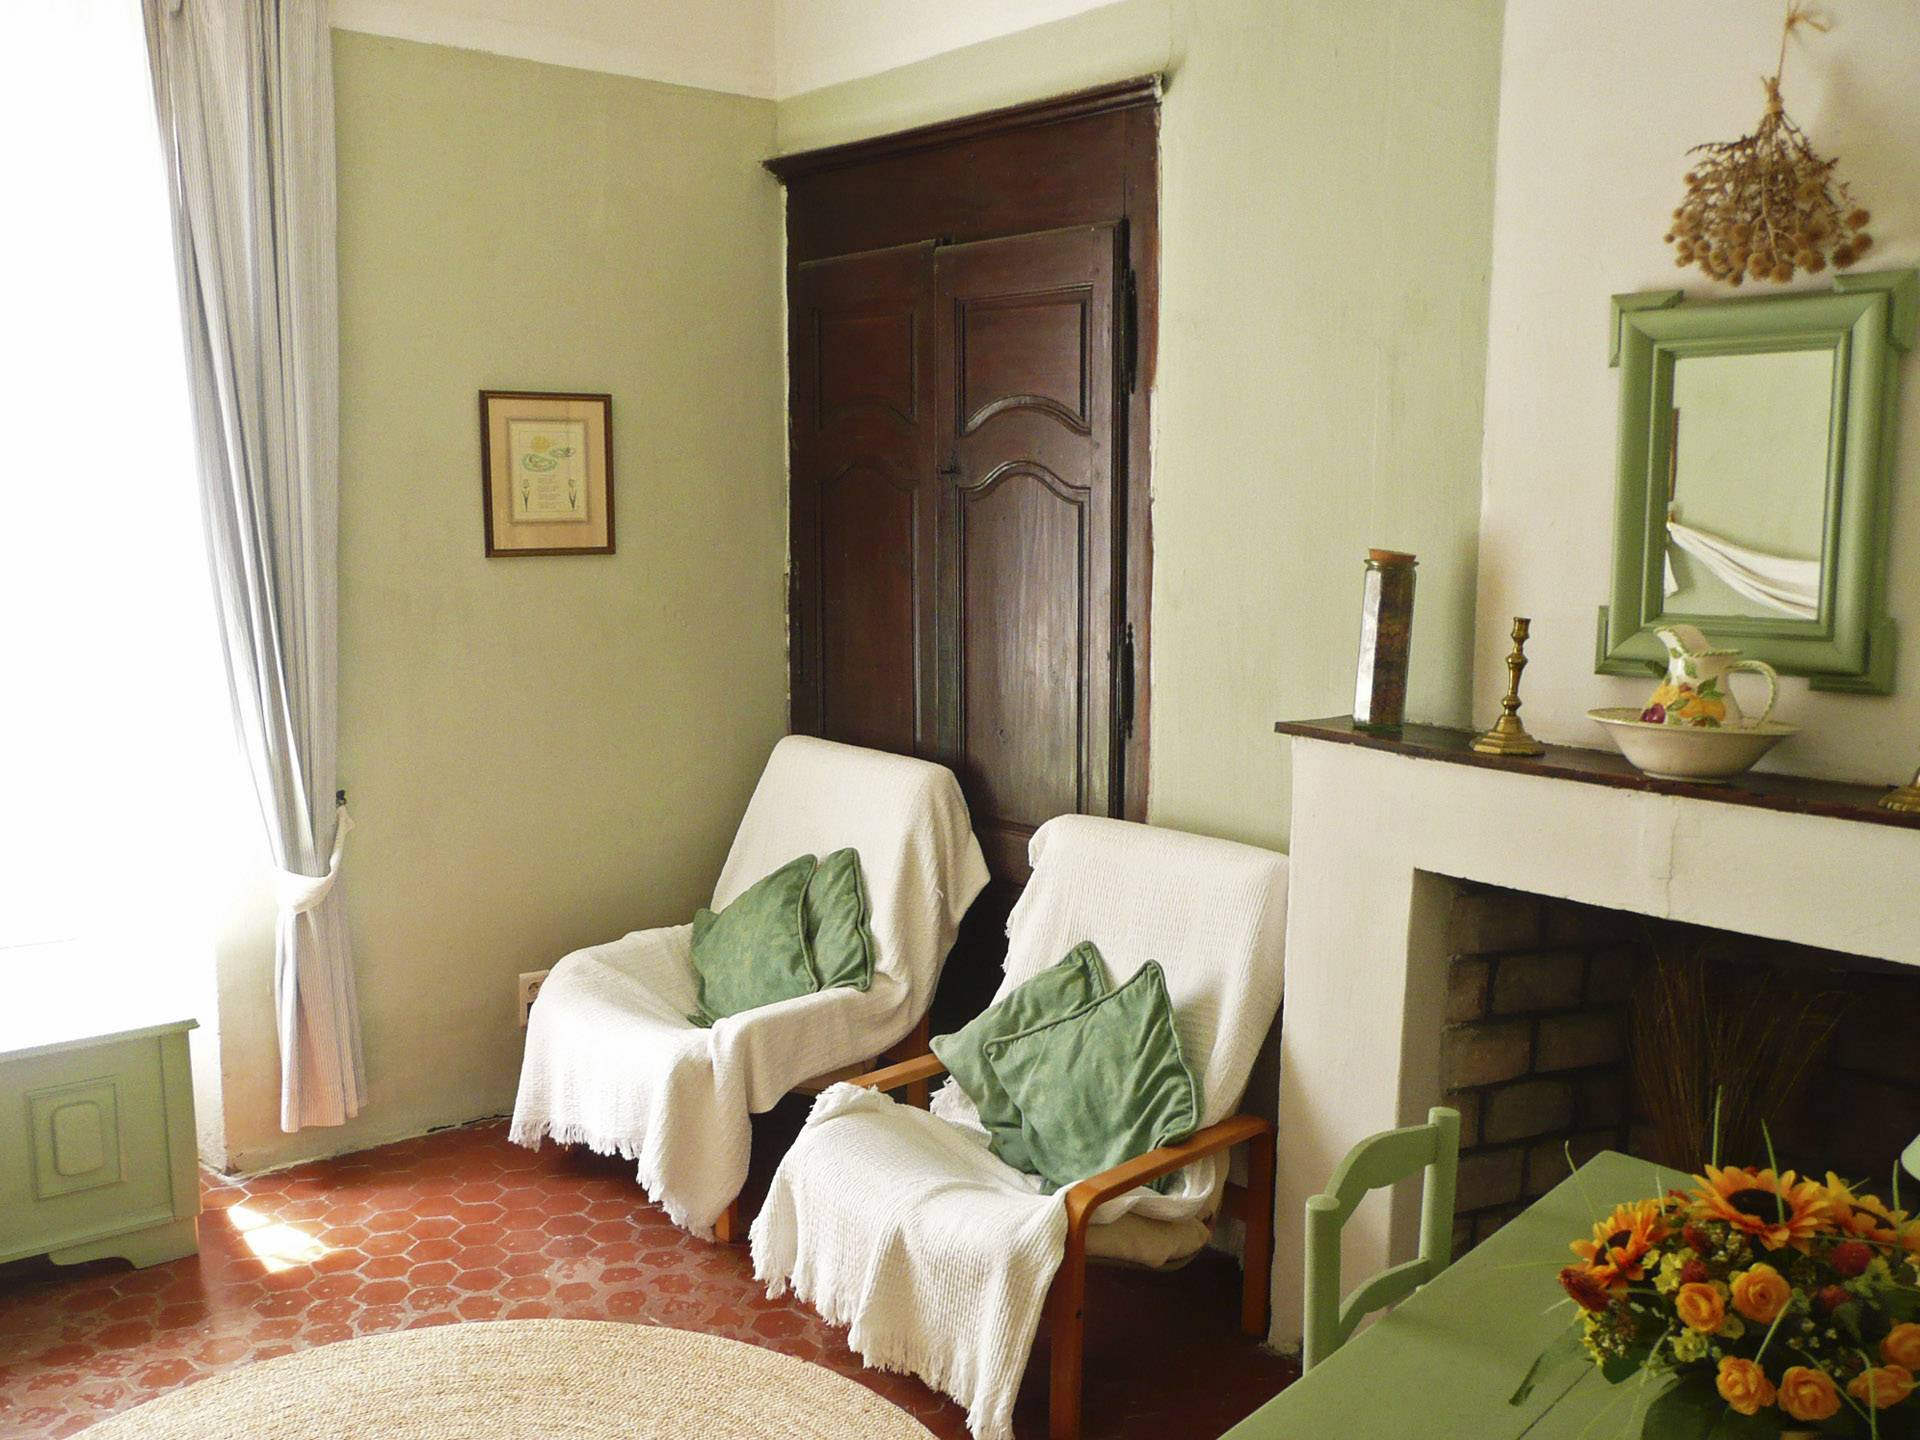 Sale Bed and breakfast - Aups